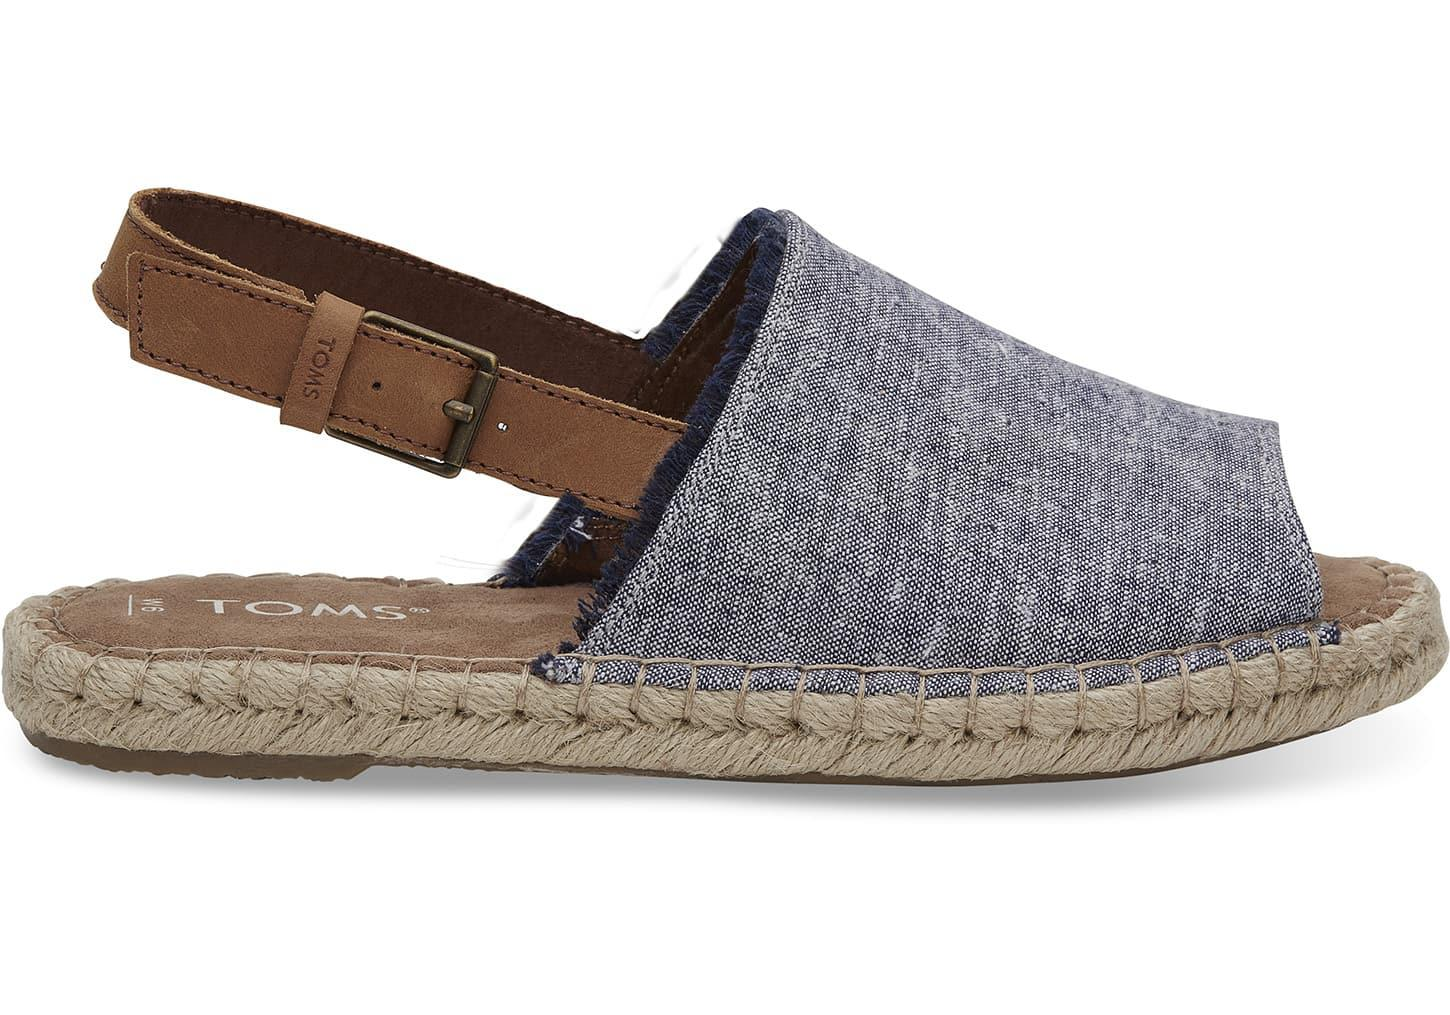 db44aa6df11 Toms Navy Slub Chambray Women s Clara Espadrilles in Blue for Men - Lyst